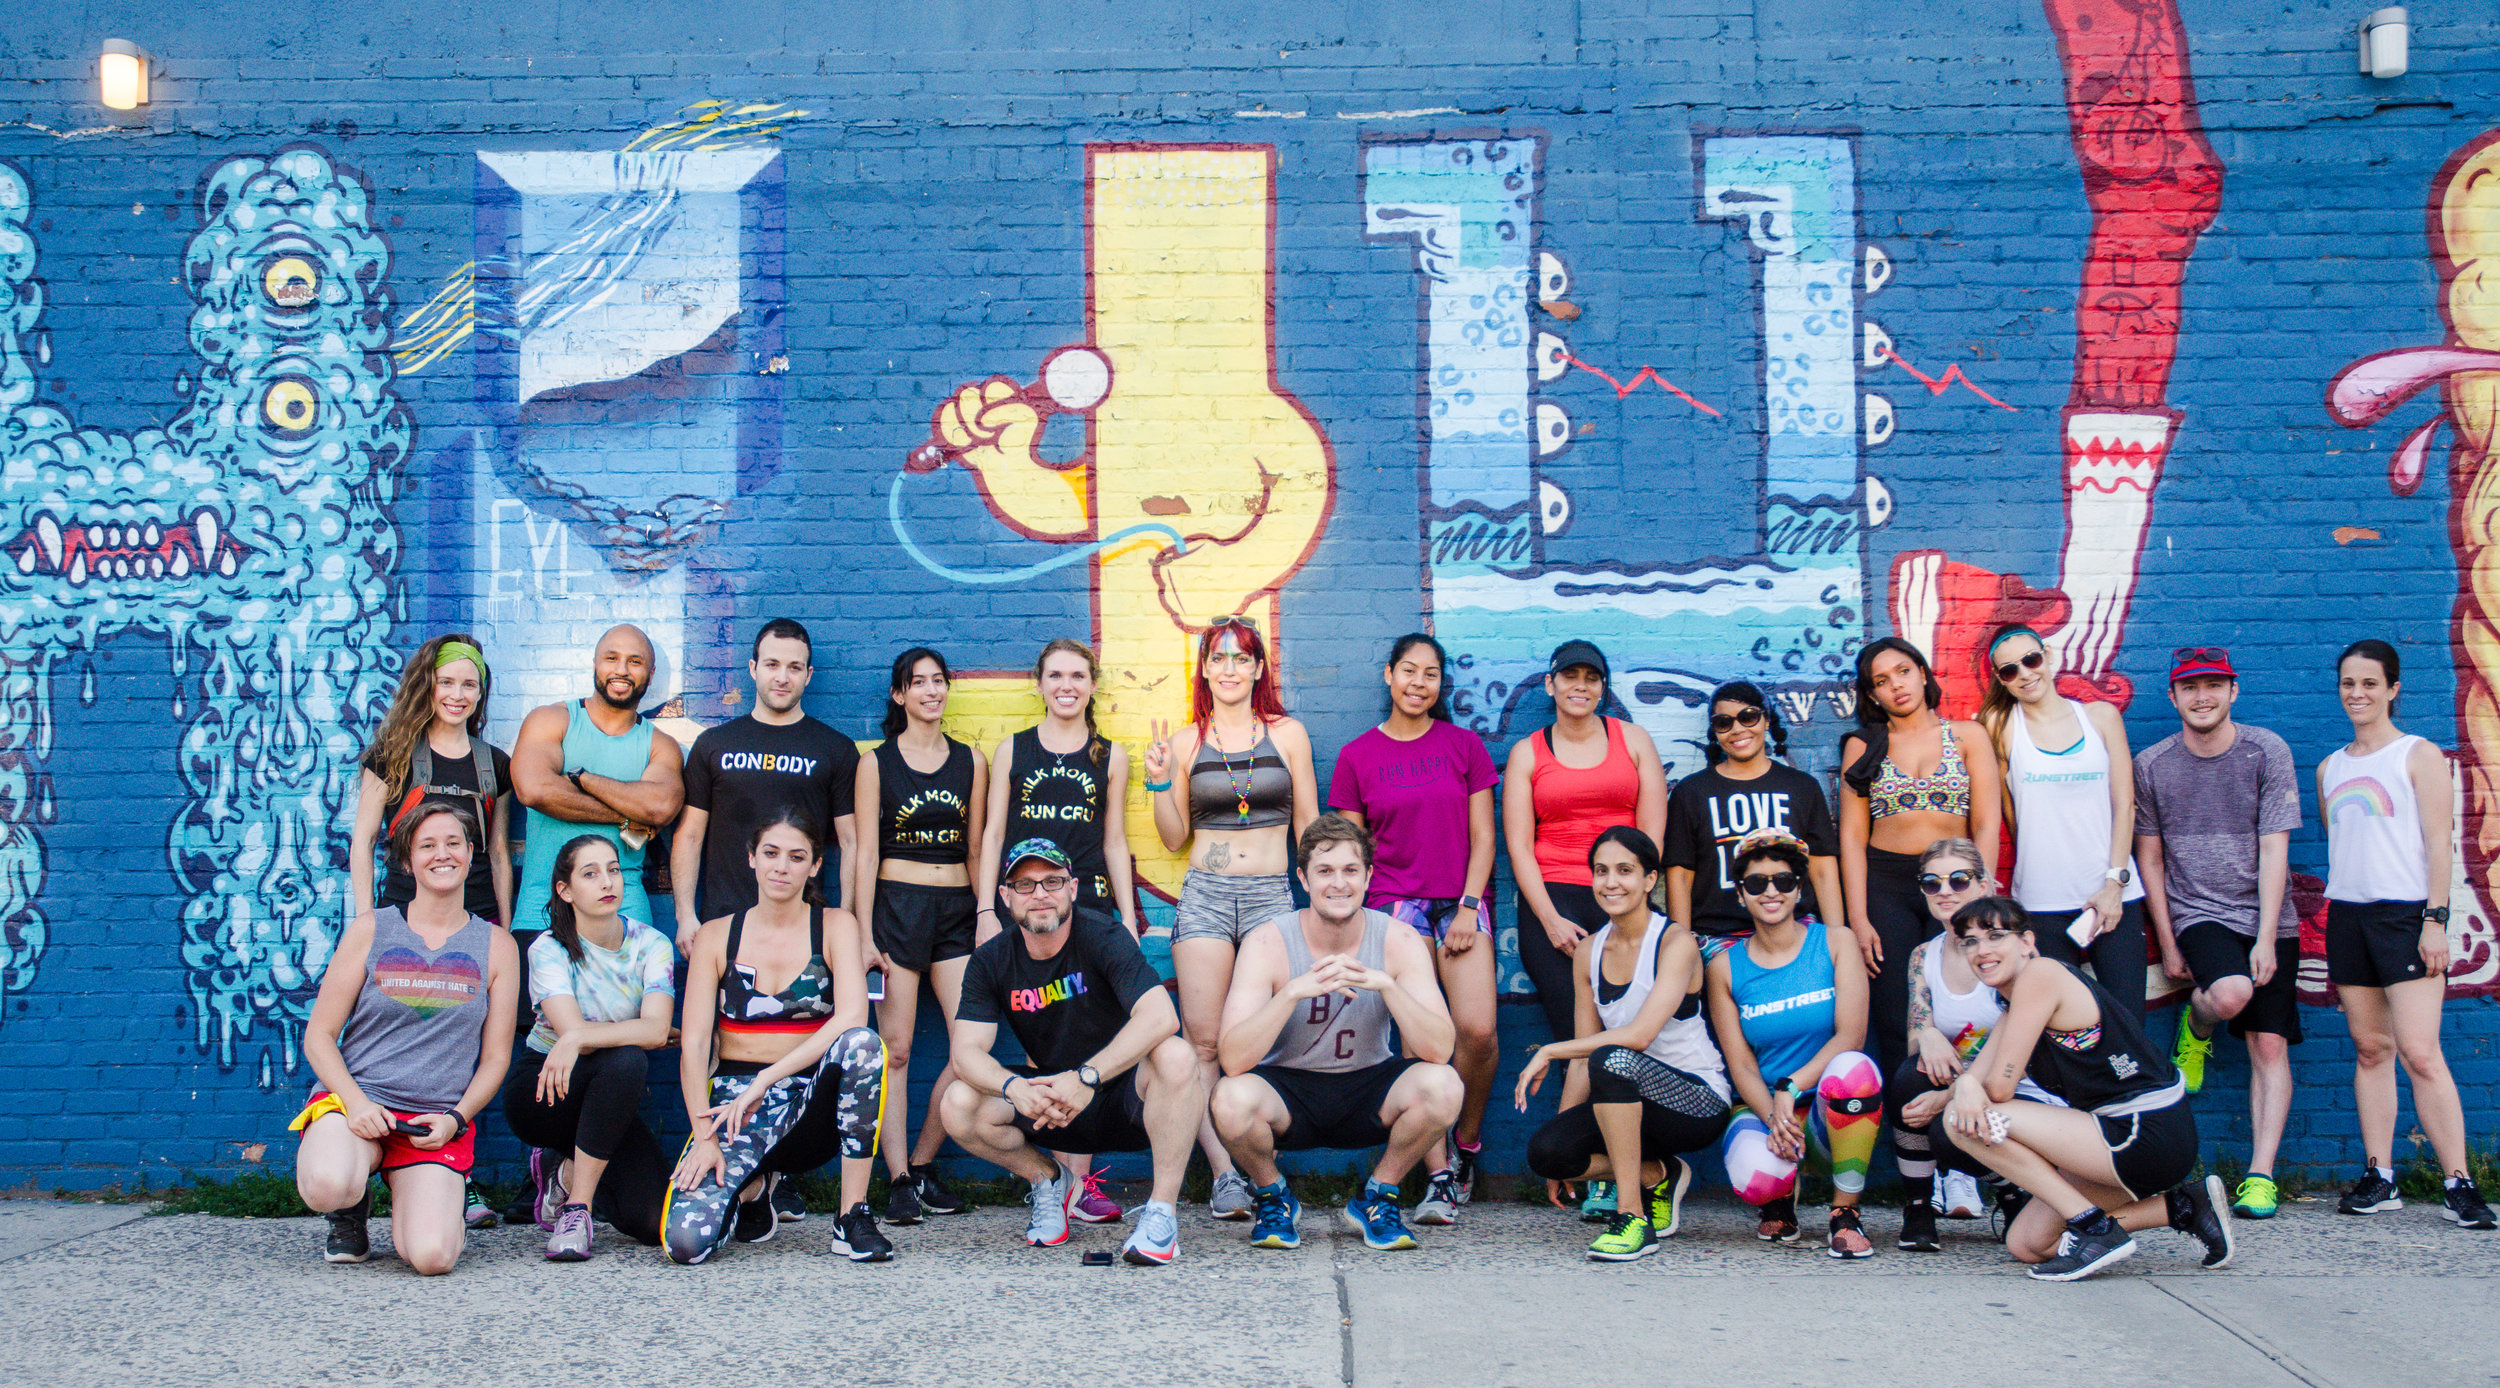 Runstreet Pride Art Run with ConBody raised funds for the LGBTQ Victory Fund.